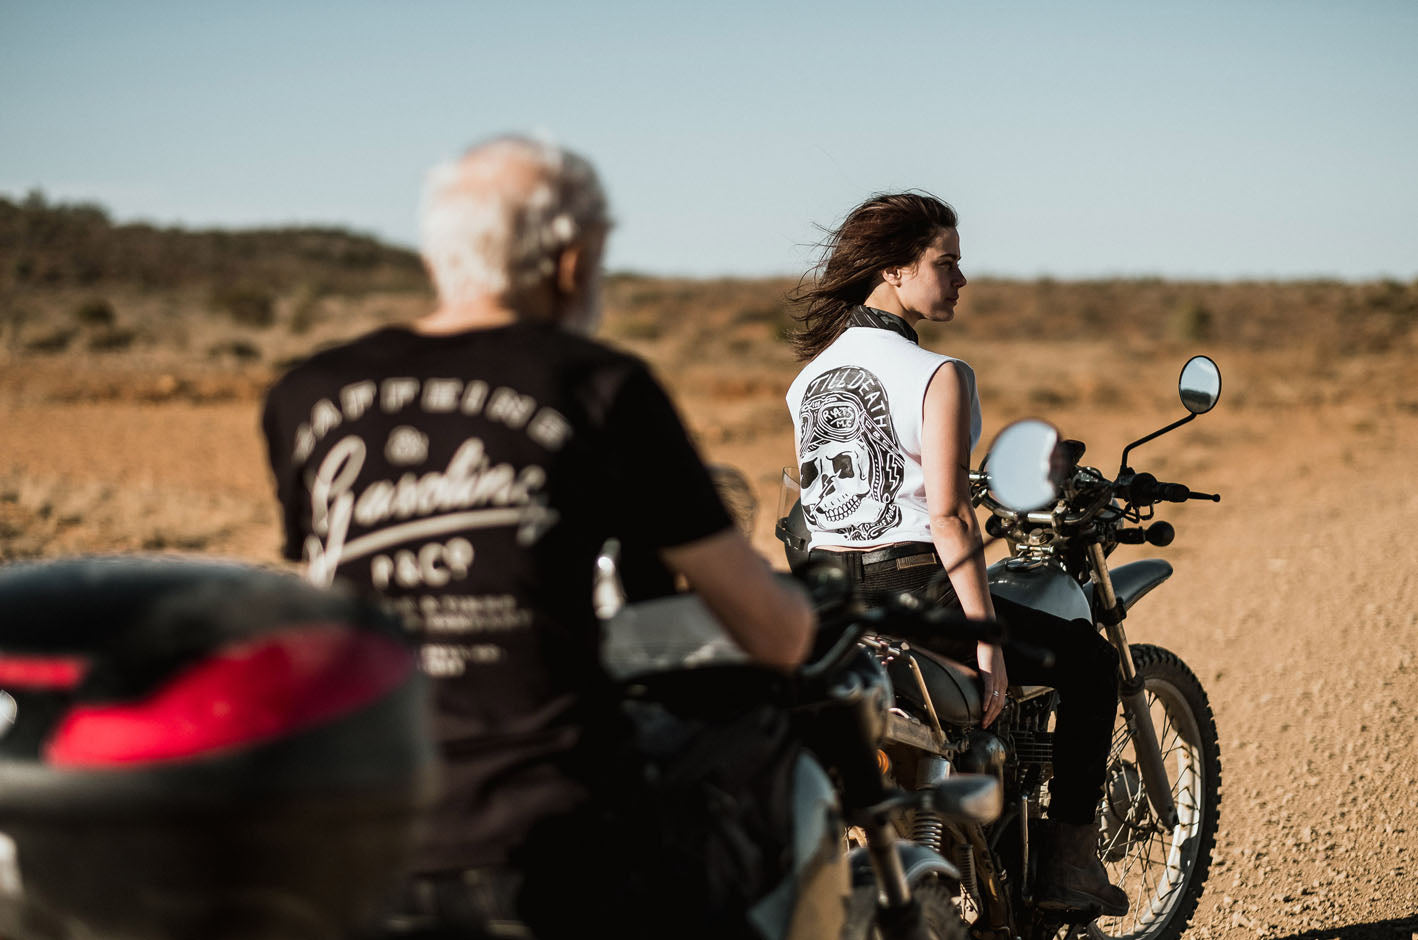 P&Co Motorcycle ride Australia